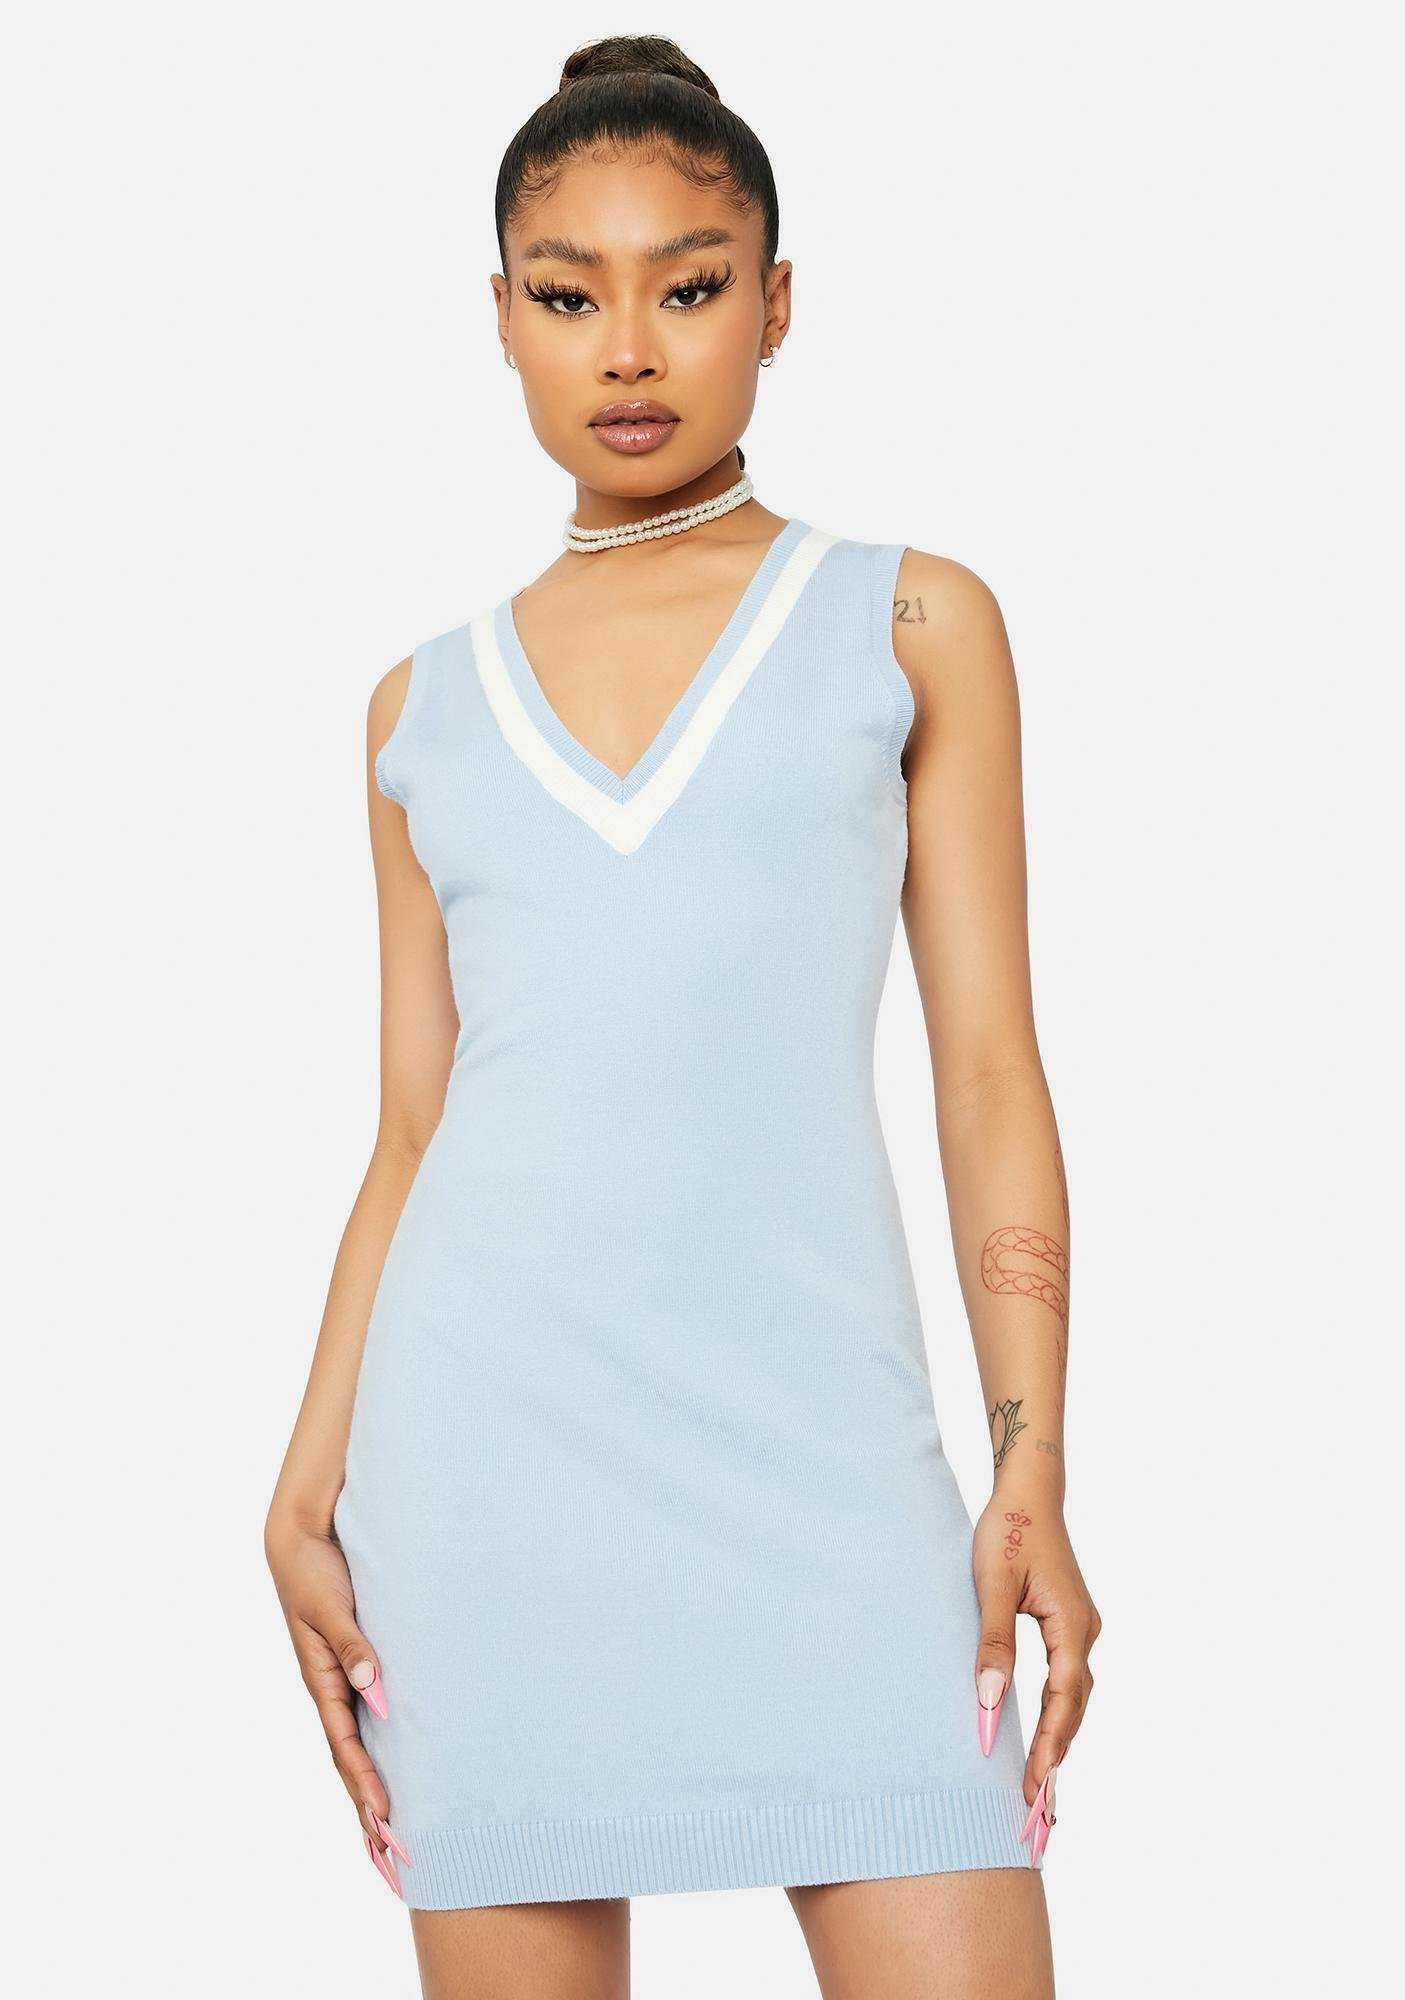 This Perfect Day Mini Dress